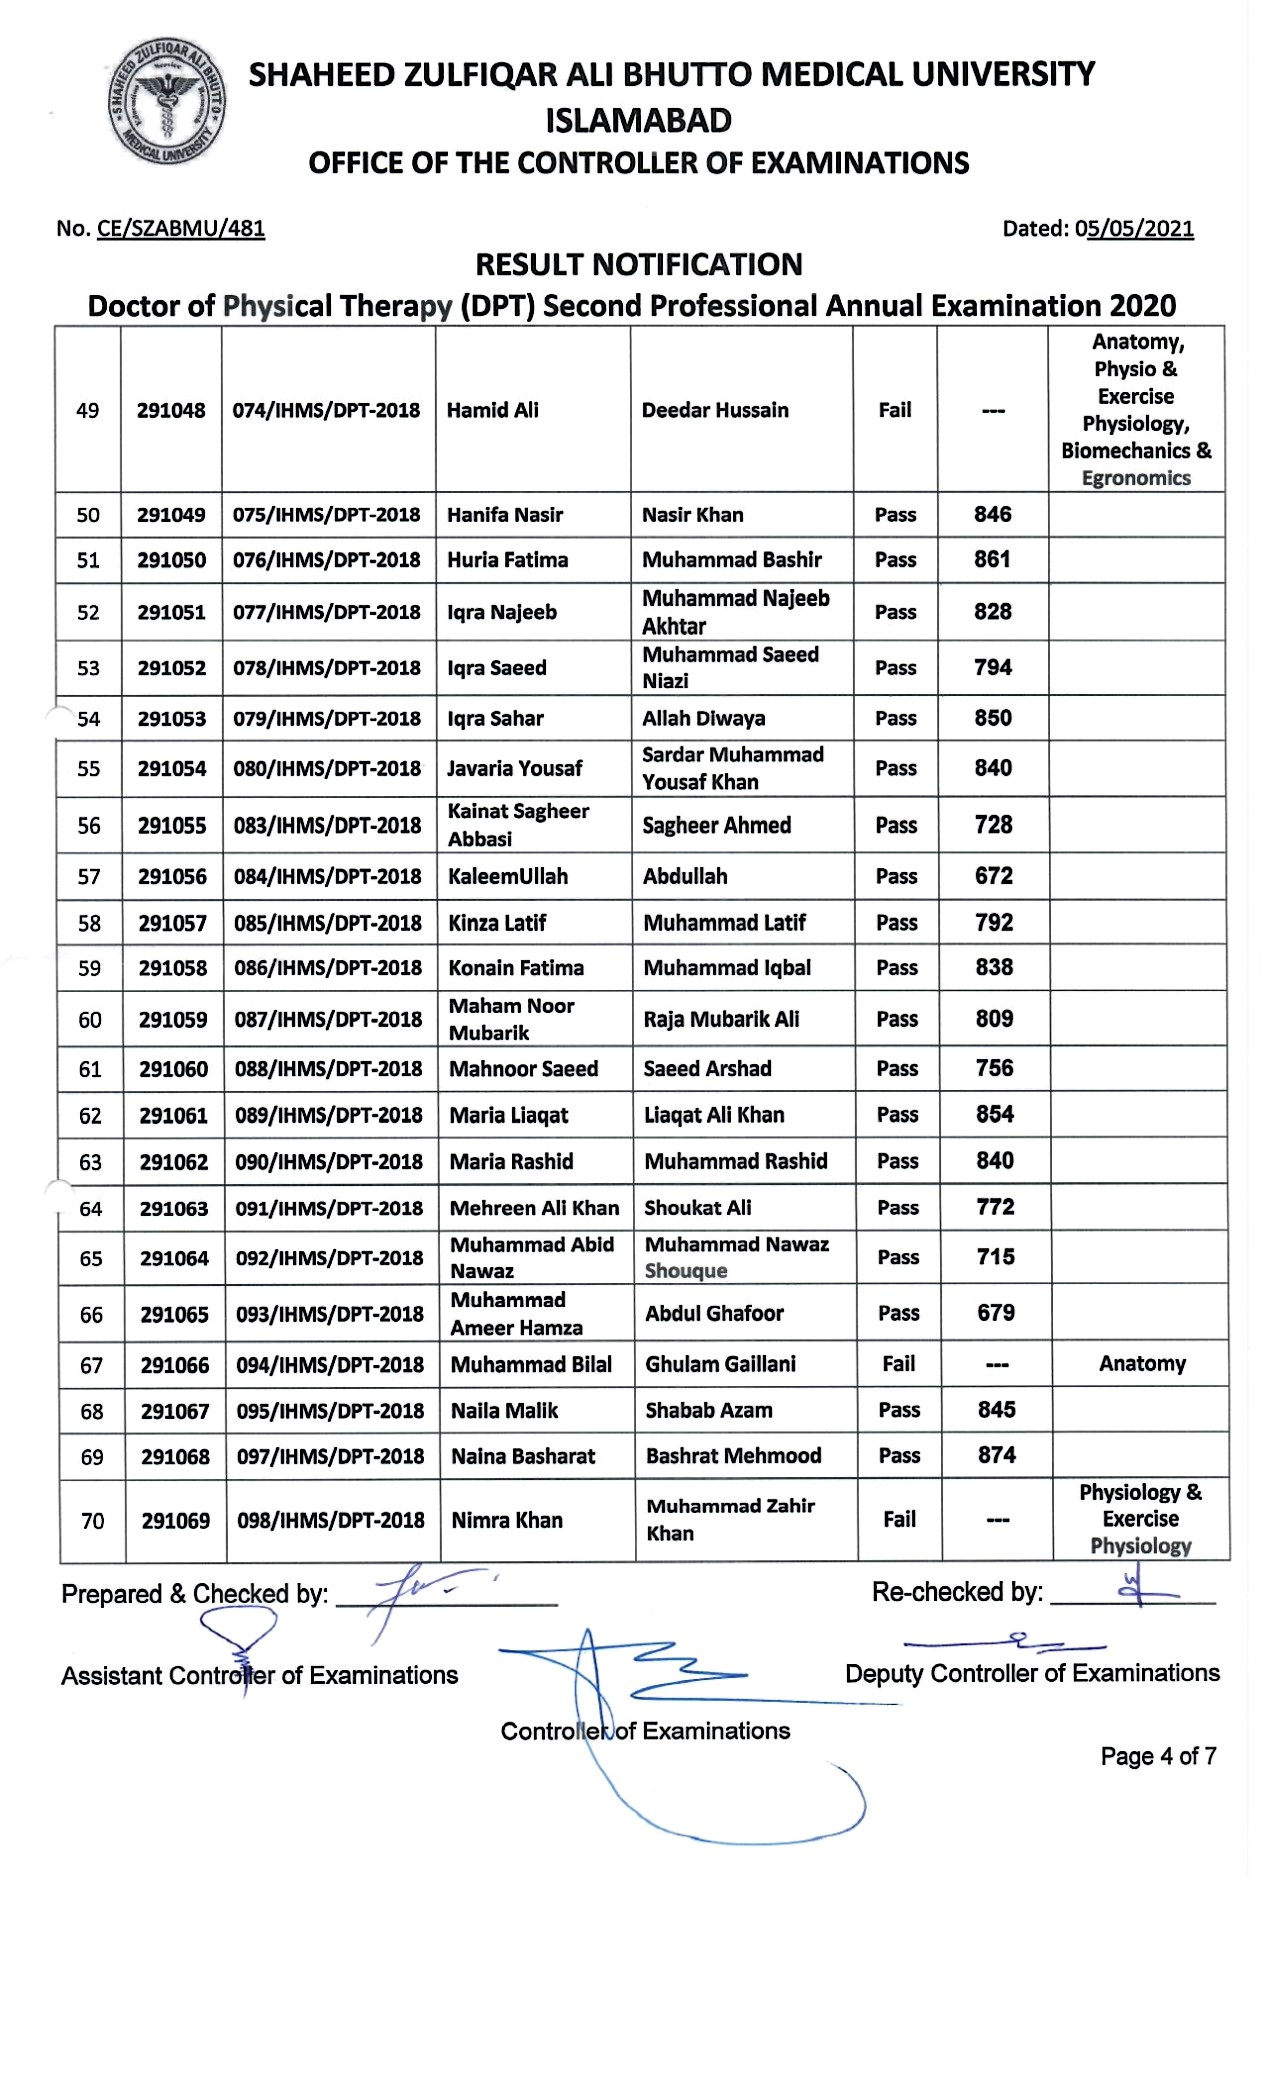 Result Notification - DPT Second Professional Annual Examination 2020